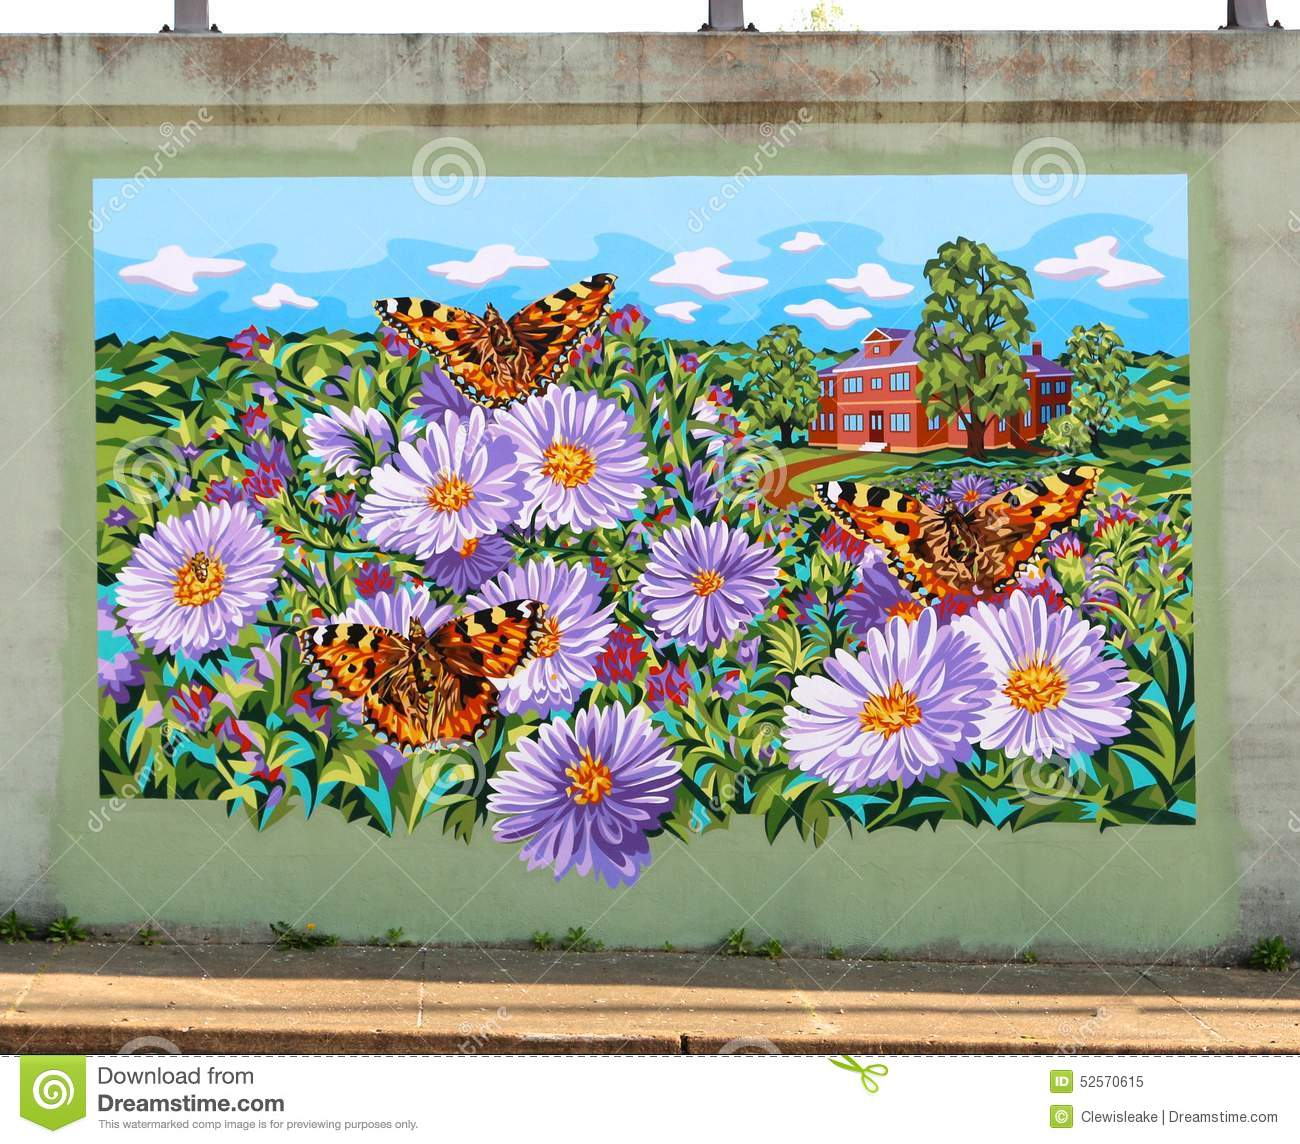 Colorful mural of house surrounded by flowers and for Mural of flowers